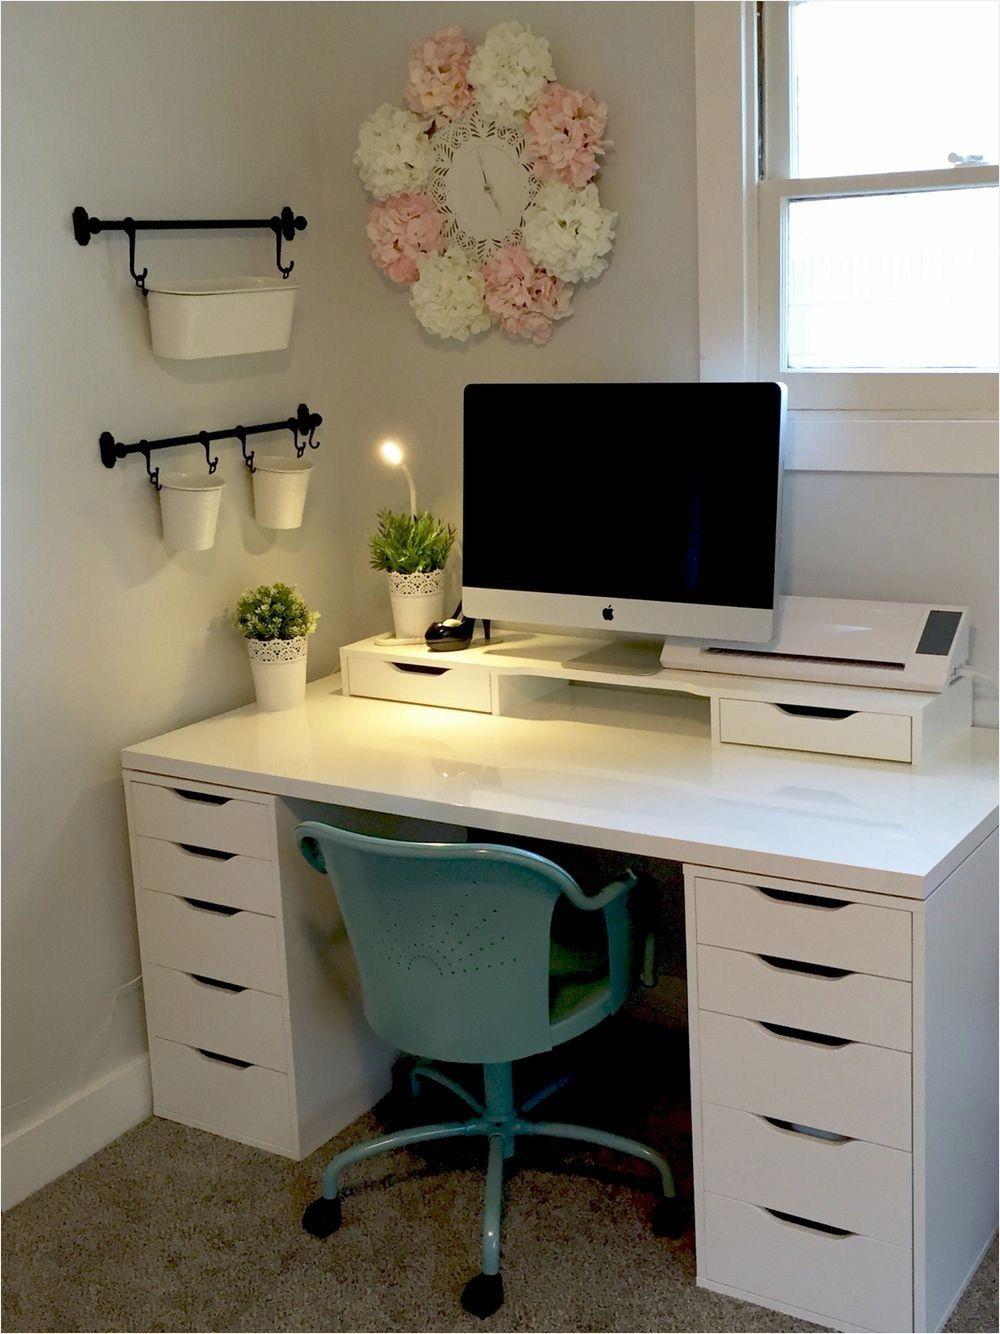 25 Best Craft Room Design and Furniture Ideas by IKEA